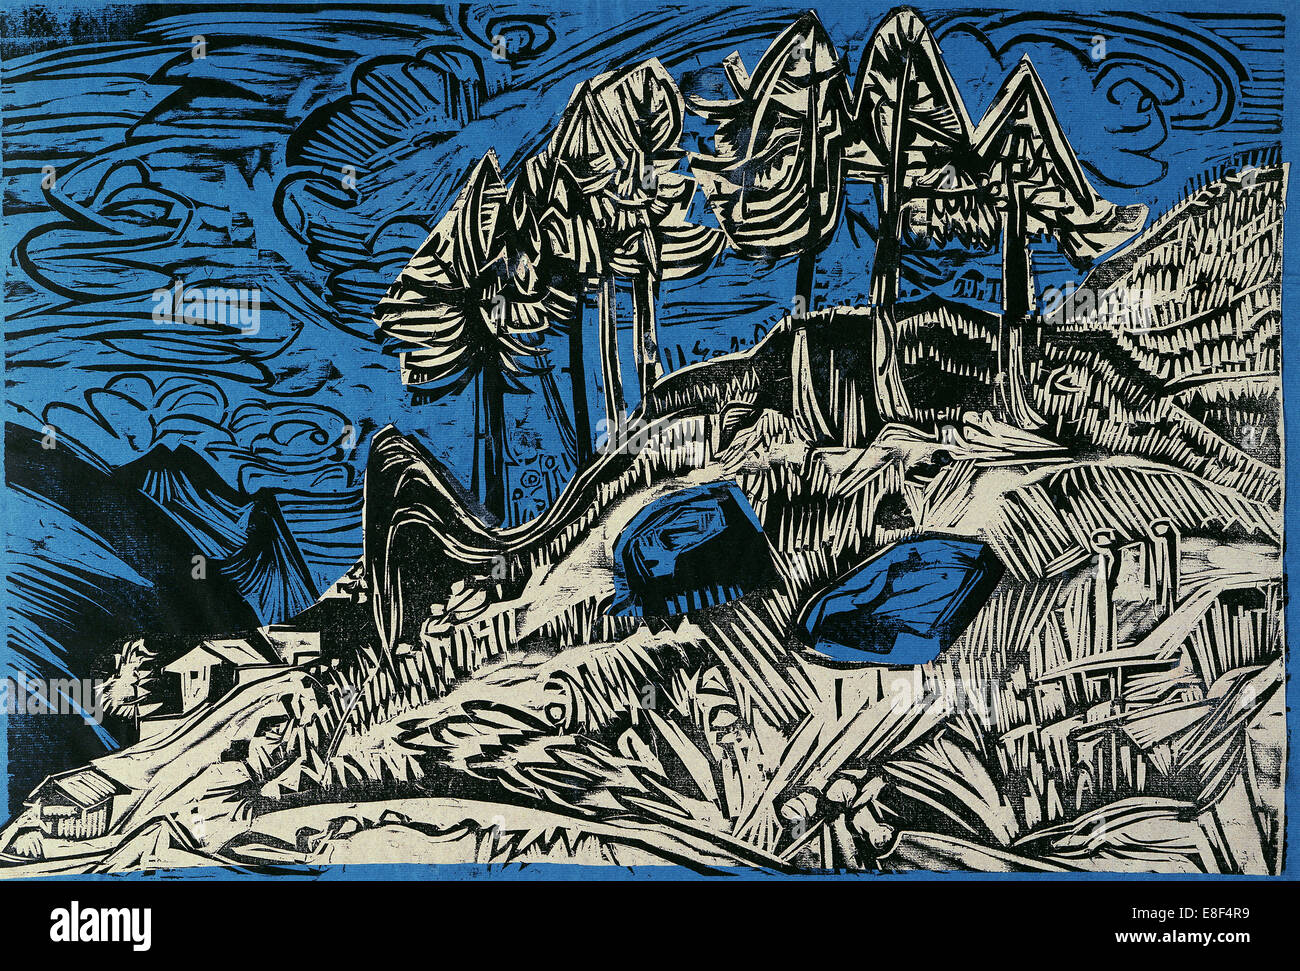 Trees on a Mountain Slope. Artist: Kirchner, Ernst Ludwig (1880-1938) - Stock Image